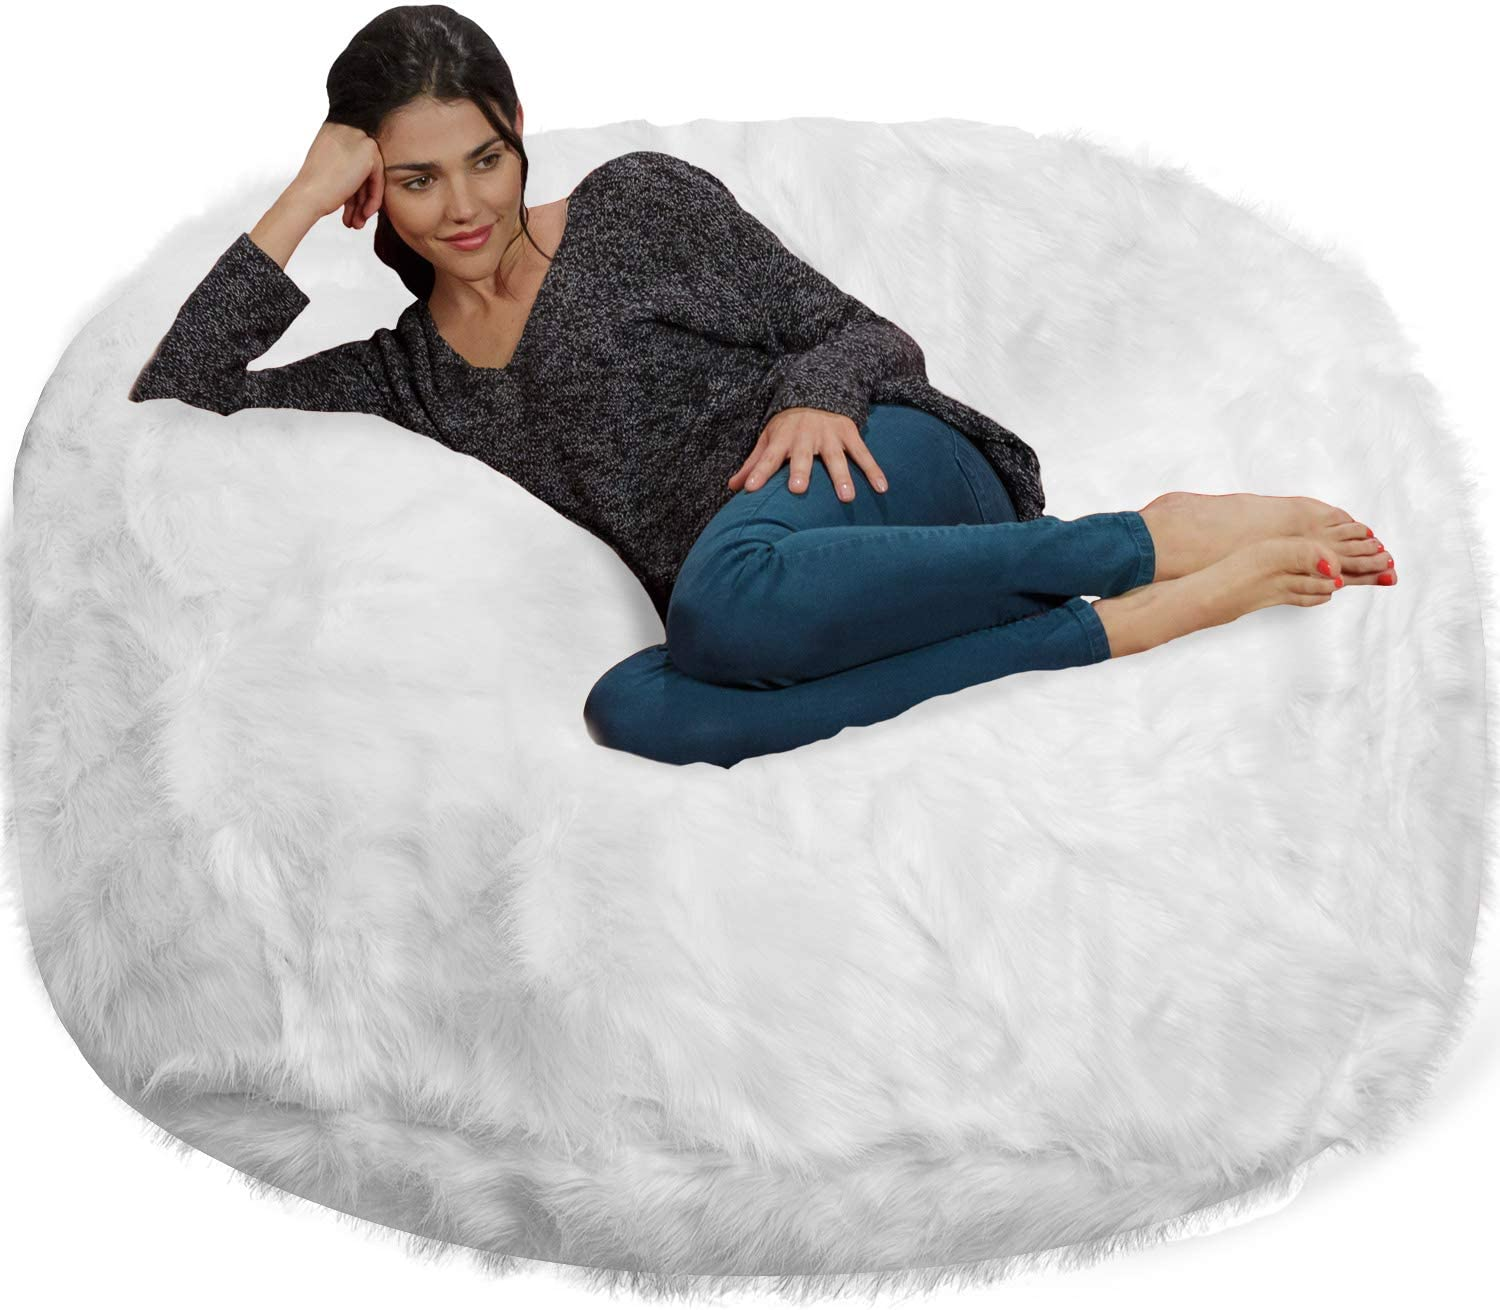 Top 7 Best Luxury Bean Bag Chairs for Adults [Top Picks 2021] 2